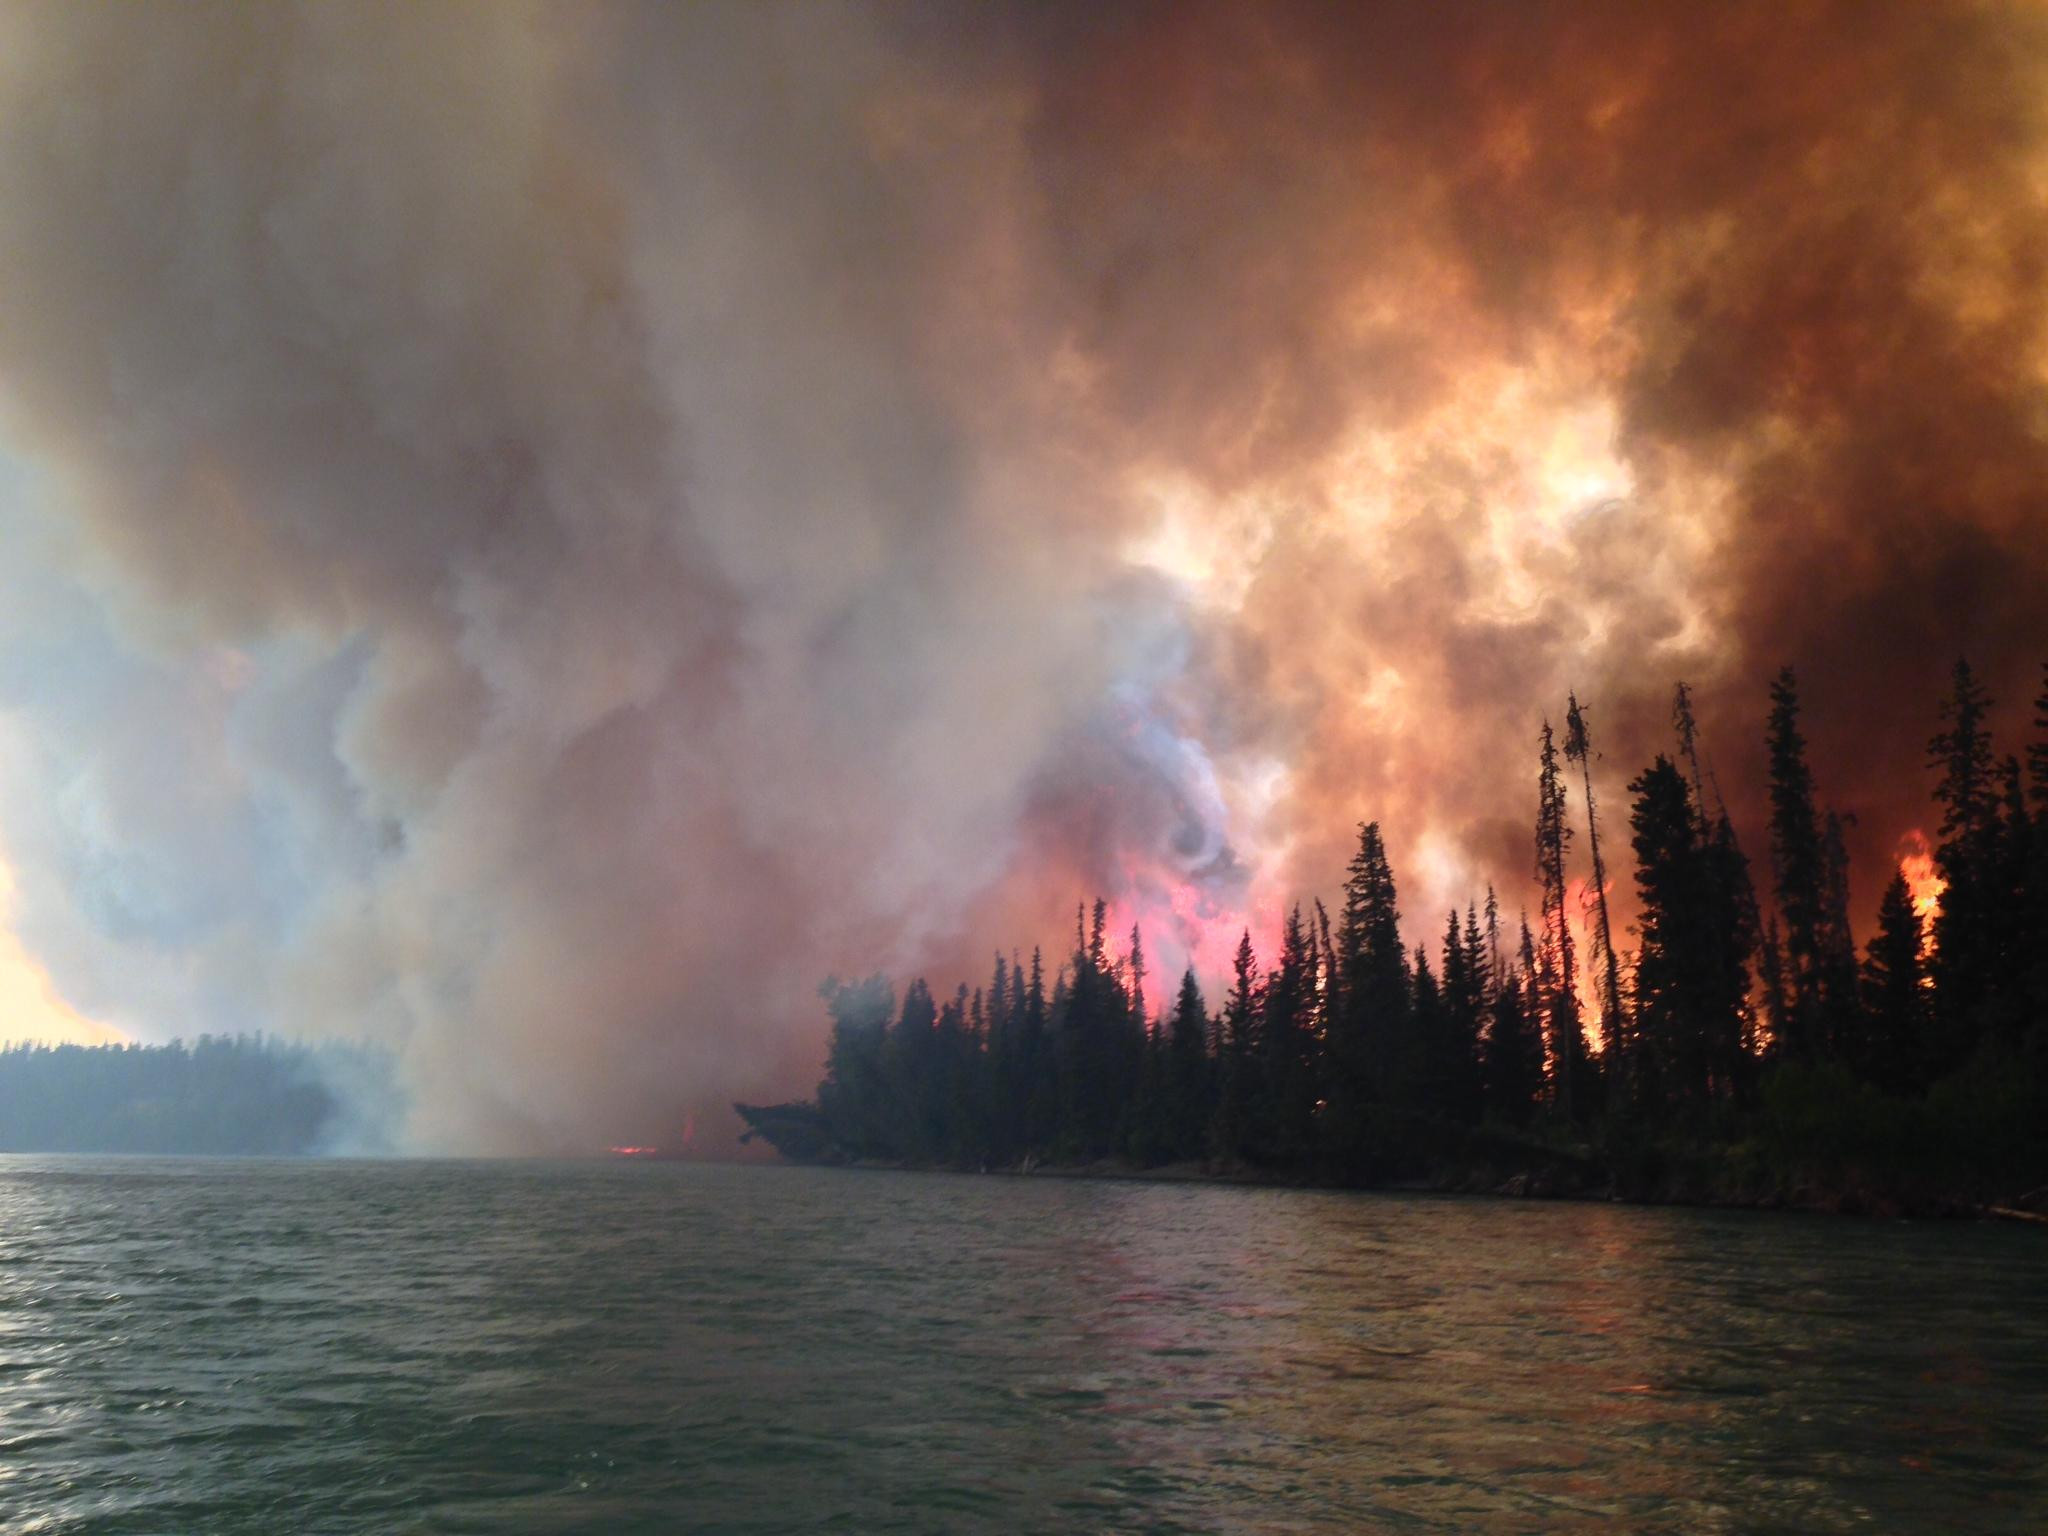 The Funny River fire on May 25. (Photo by Josh Turnbow/Courtesy Alaska Inciweb)